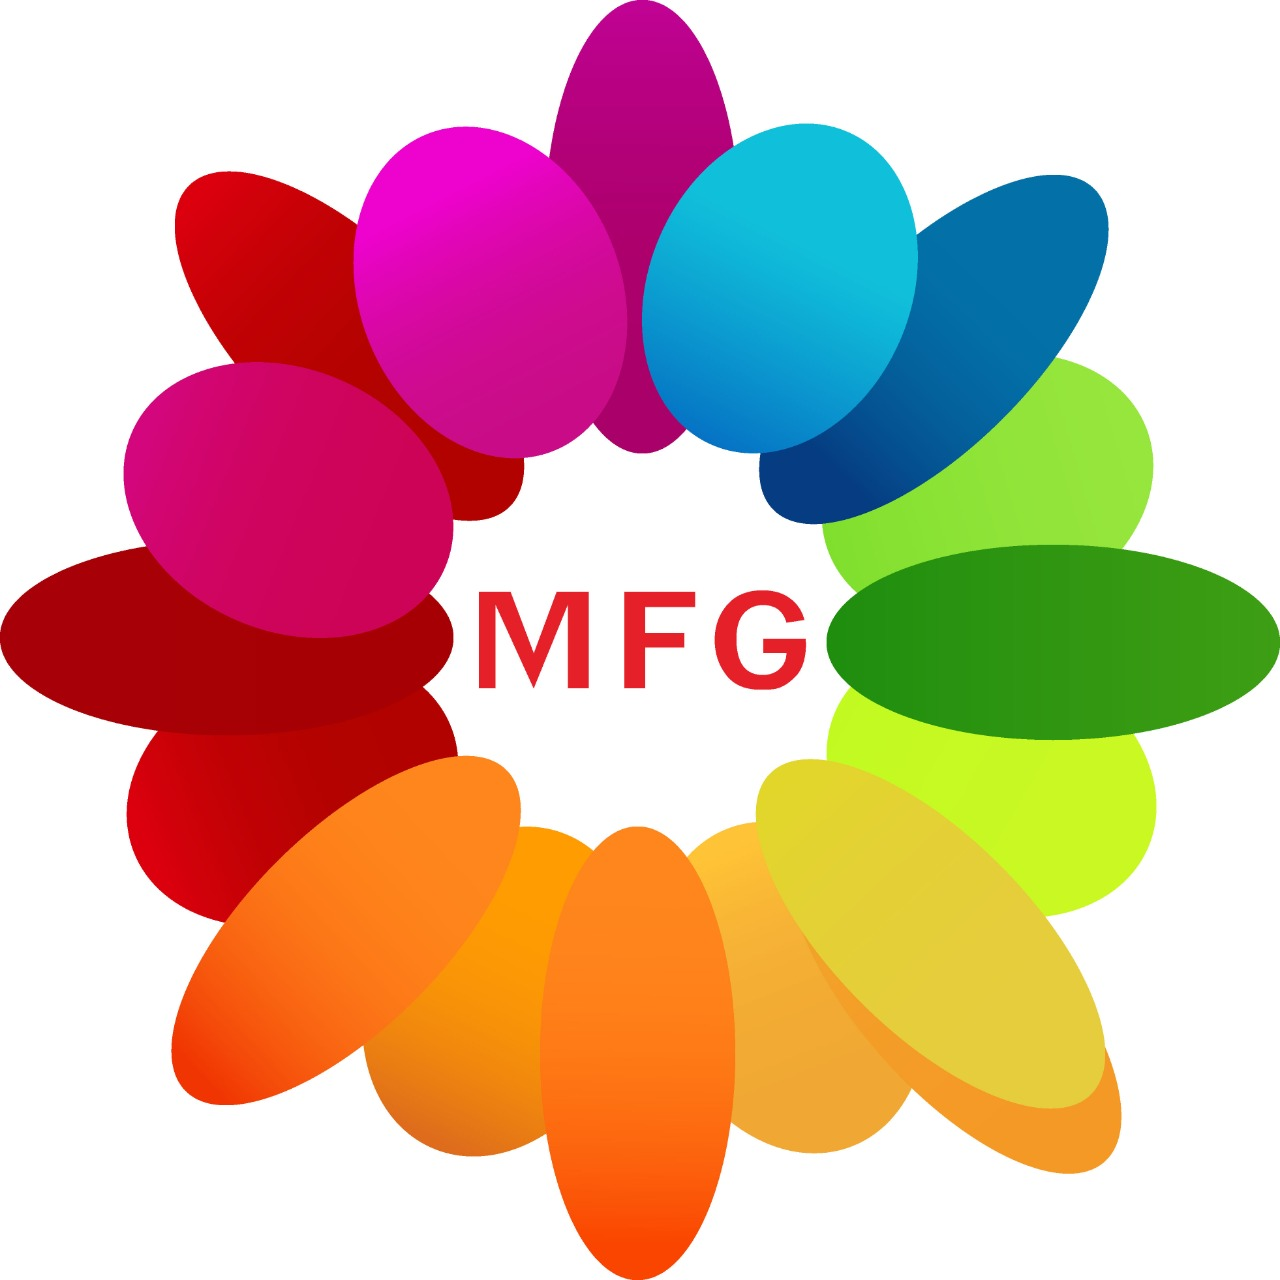 1 Kg Chocolate Dreams Heart Shape Cake Myflowergift